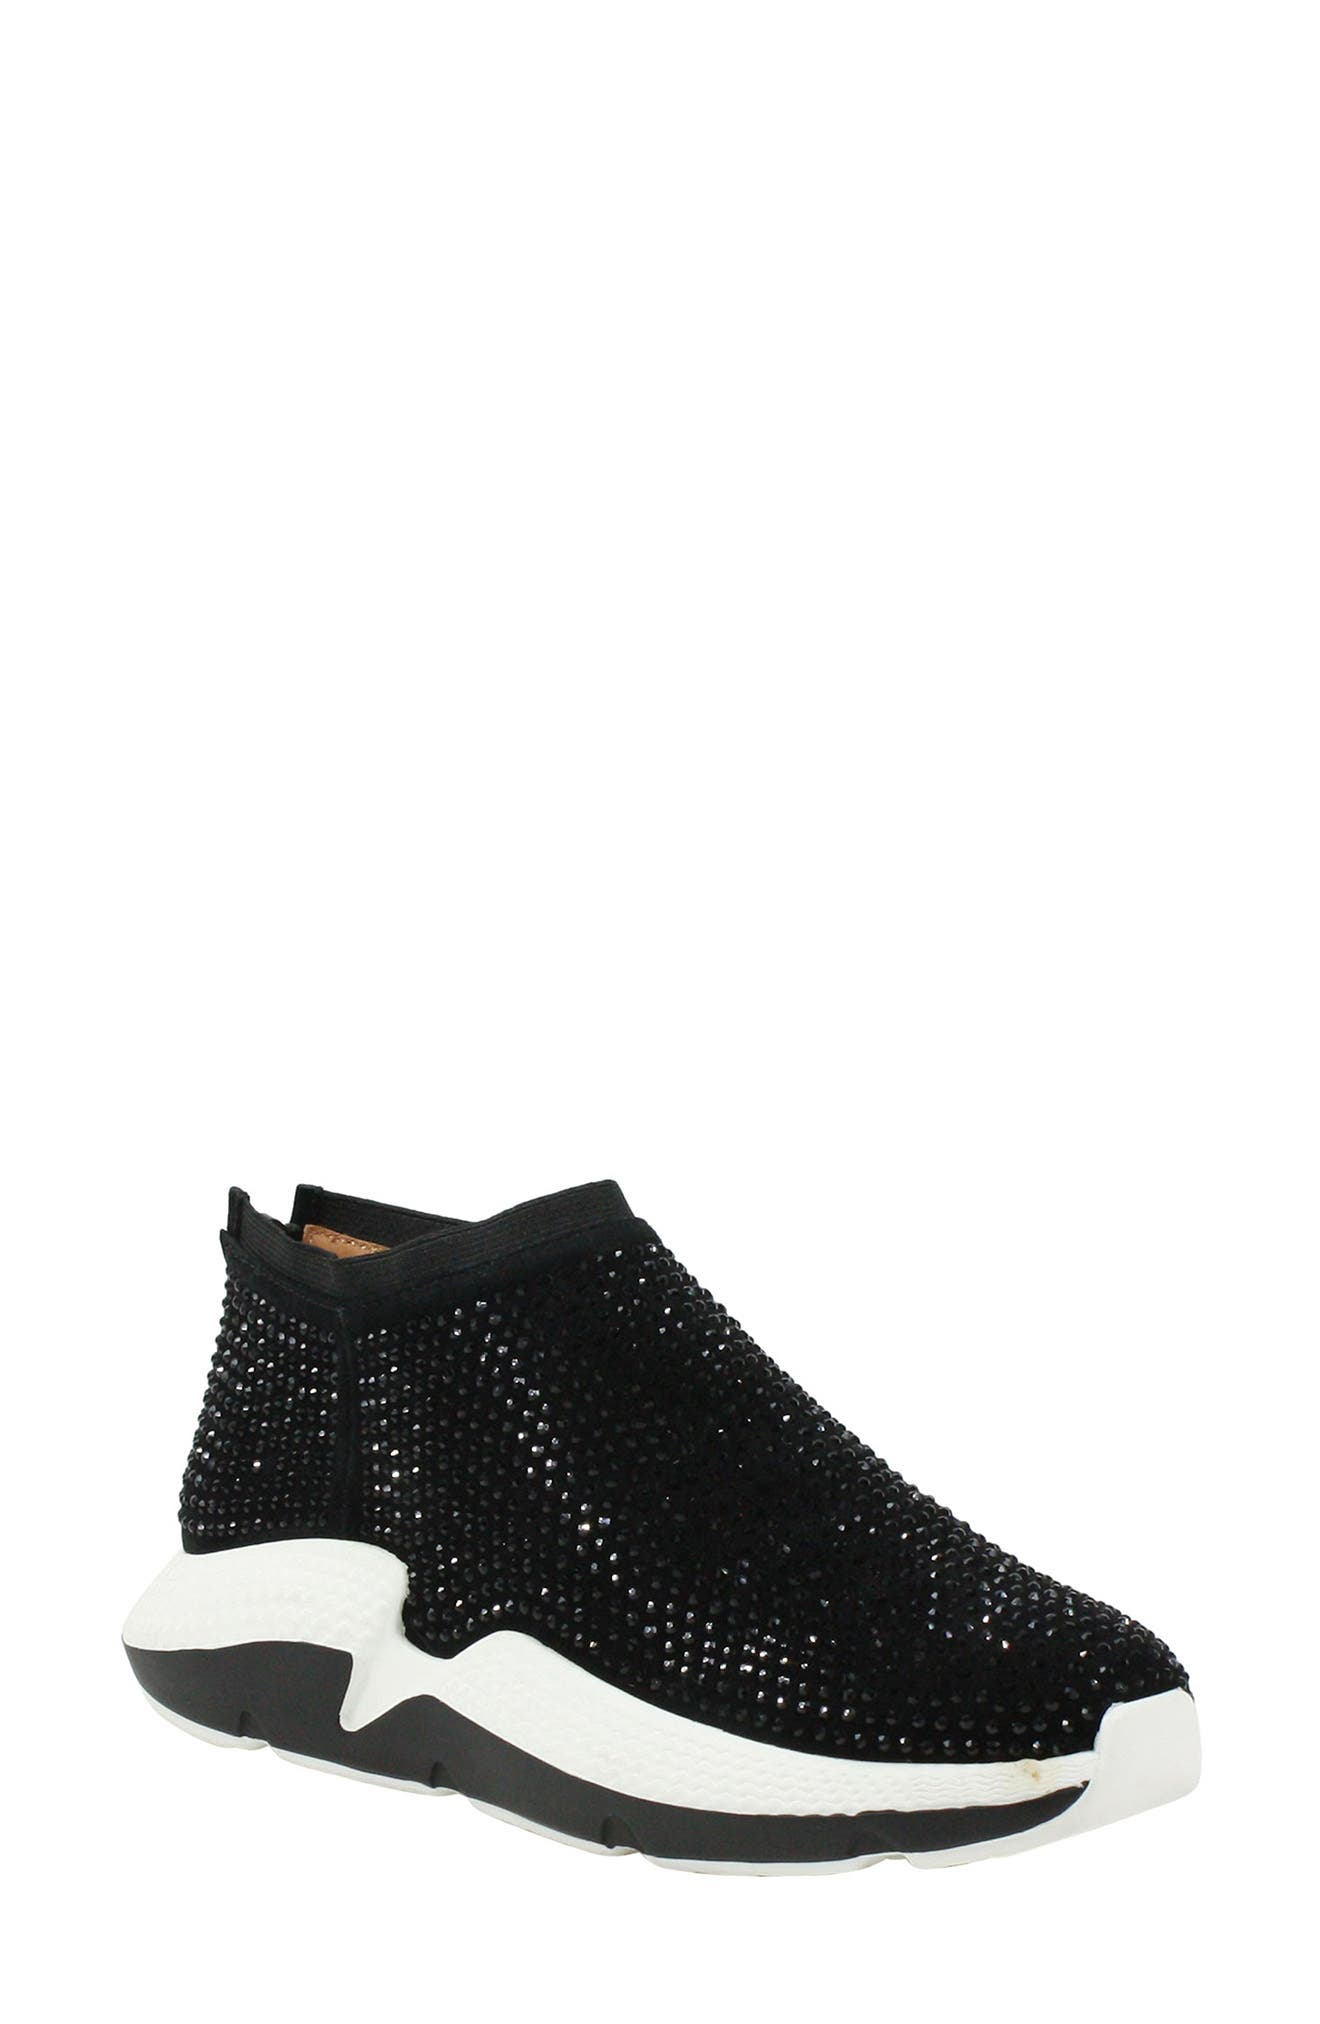 Sparkling crystals embellish a street-chic sneaker lofted by a futuristic two-tone sole. Style Name:L\\\'Amour Des Pieds Helena Embellished Sneaker (Women). Style Number: 6086180. Available in stores.